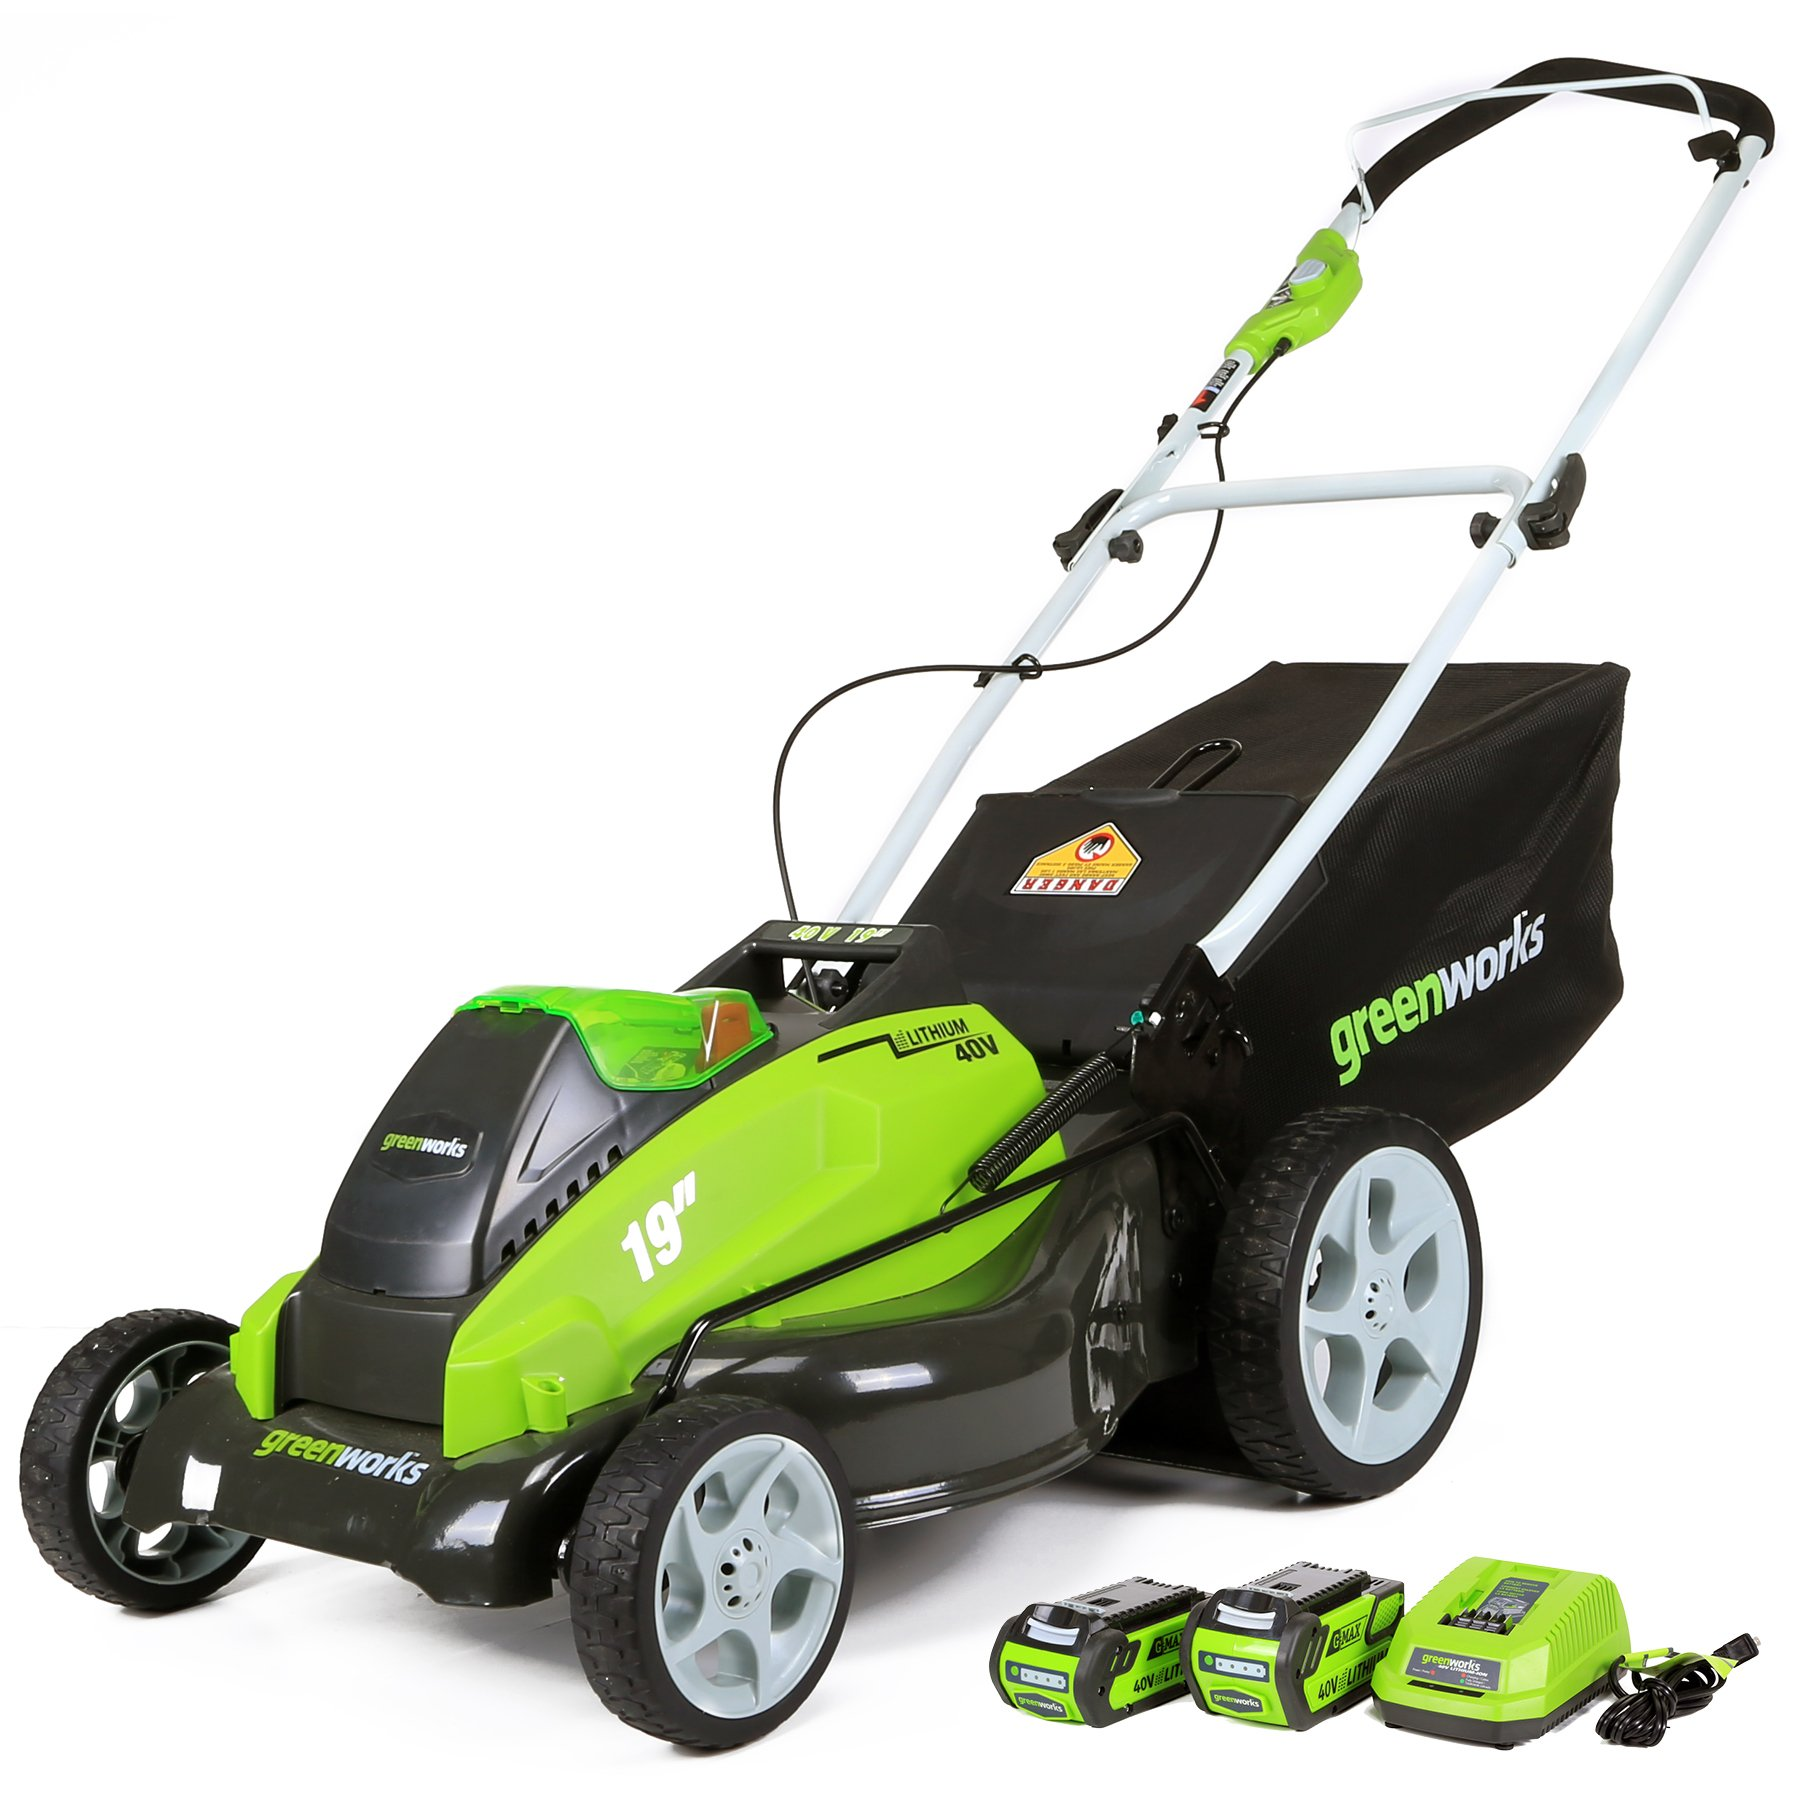 Greenworks 19-Inch 40V Cordless Lawn Mower, 4.0 AH & 2.0 AH Batteries Included 25223 by Greenworks